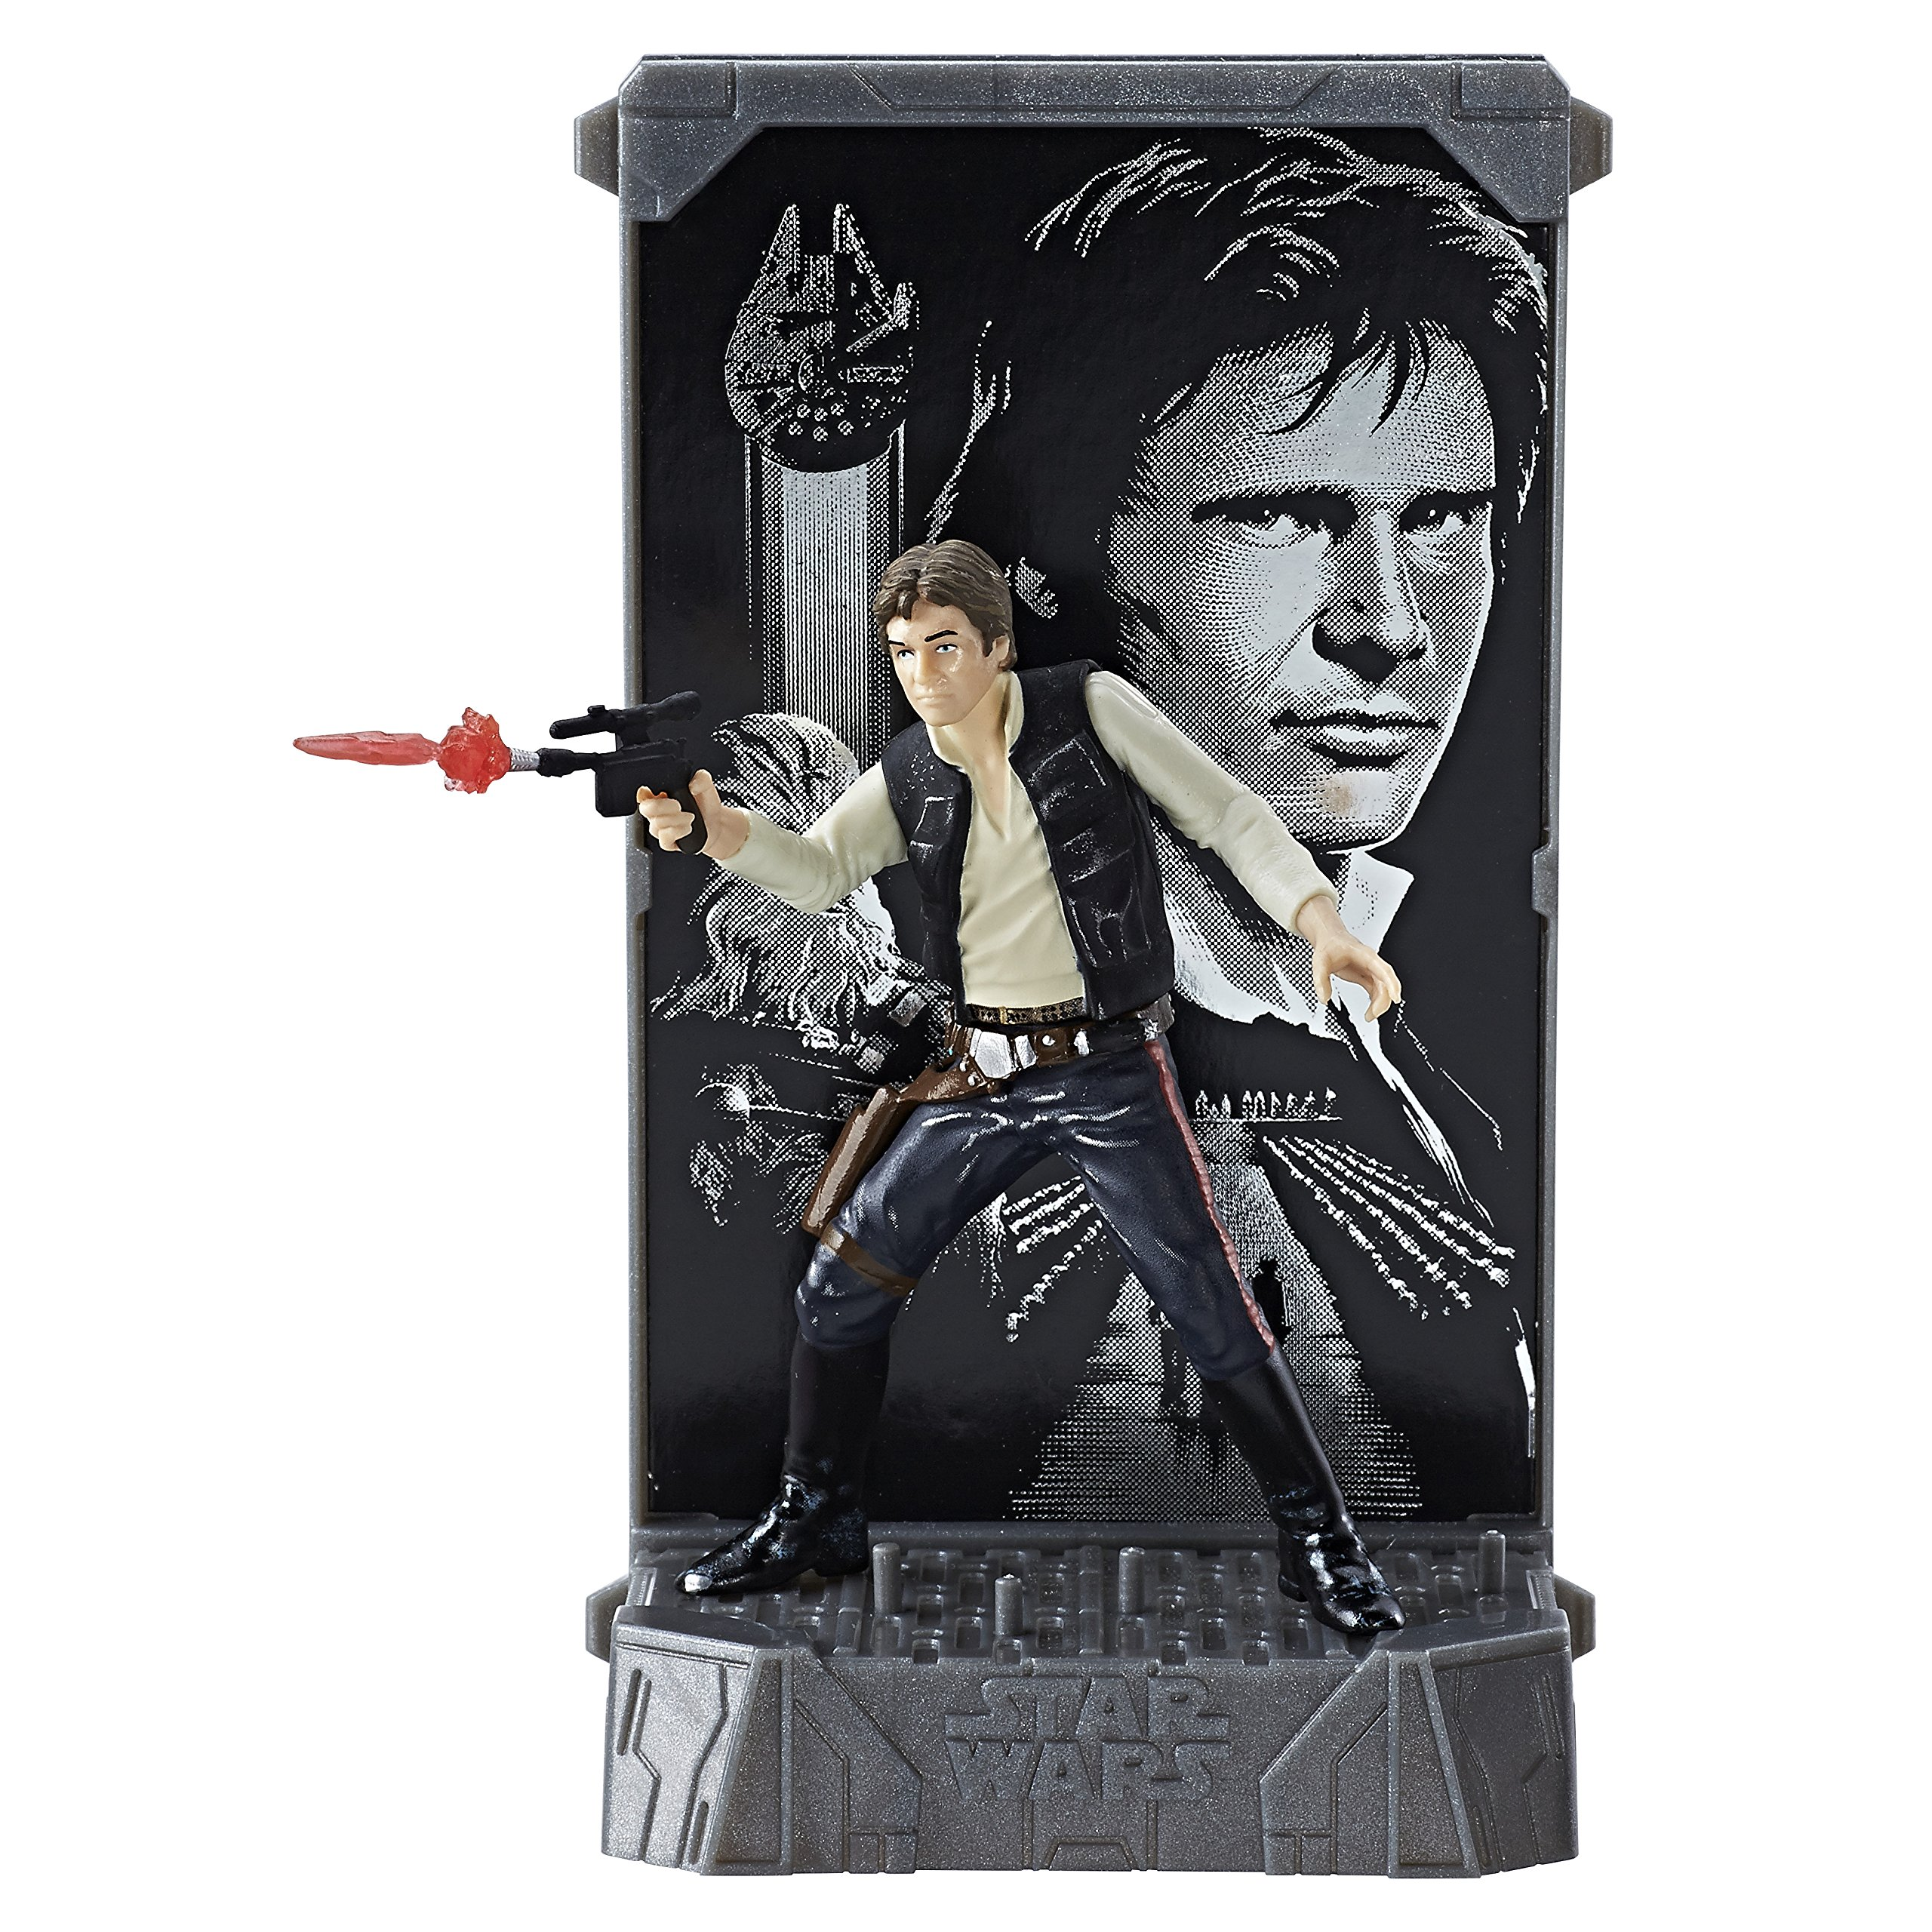 Star Wars Car Seat Covers >> Other Action Figures - Star Wars Black Series Titanium 40th Anniversary Han Solo Action Figure ...